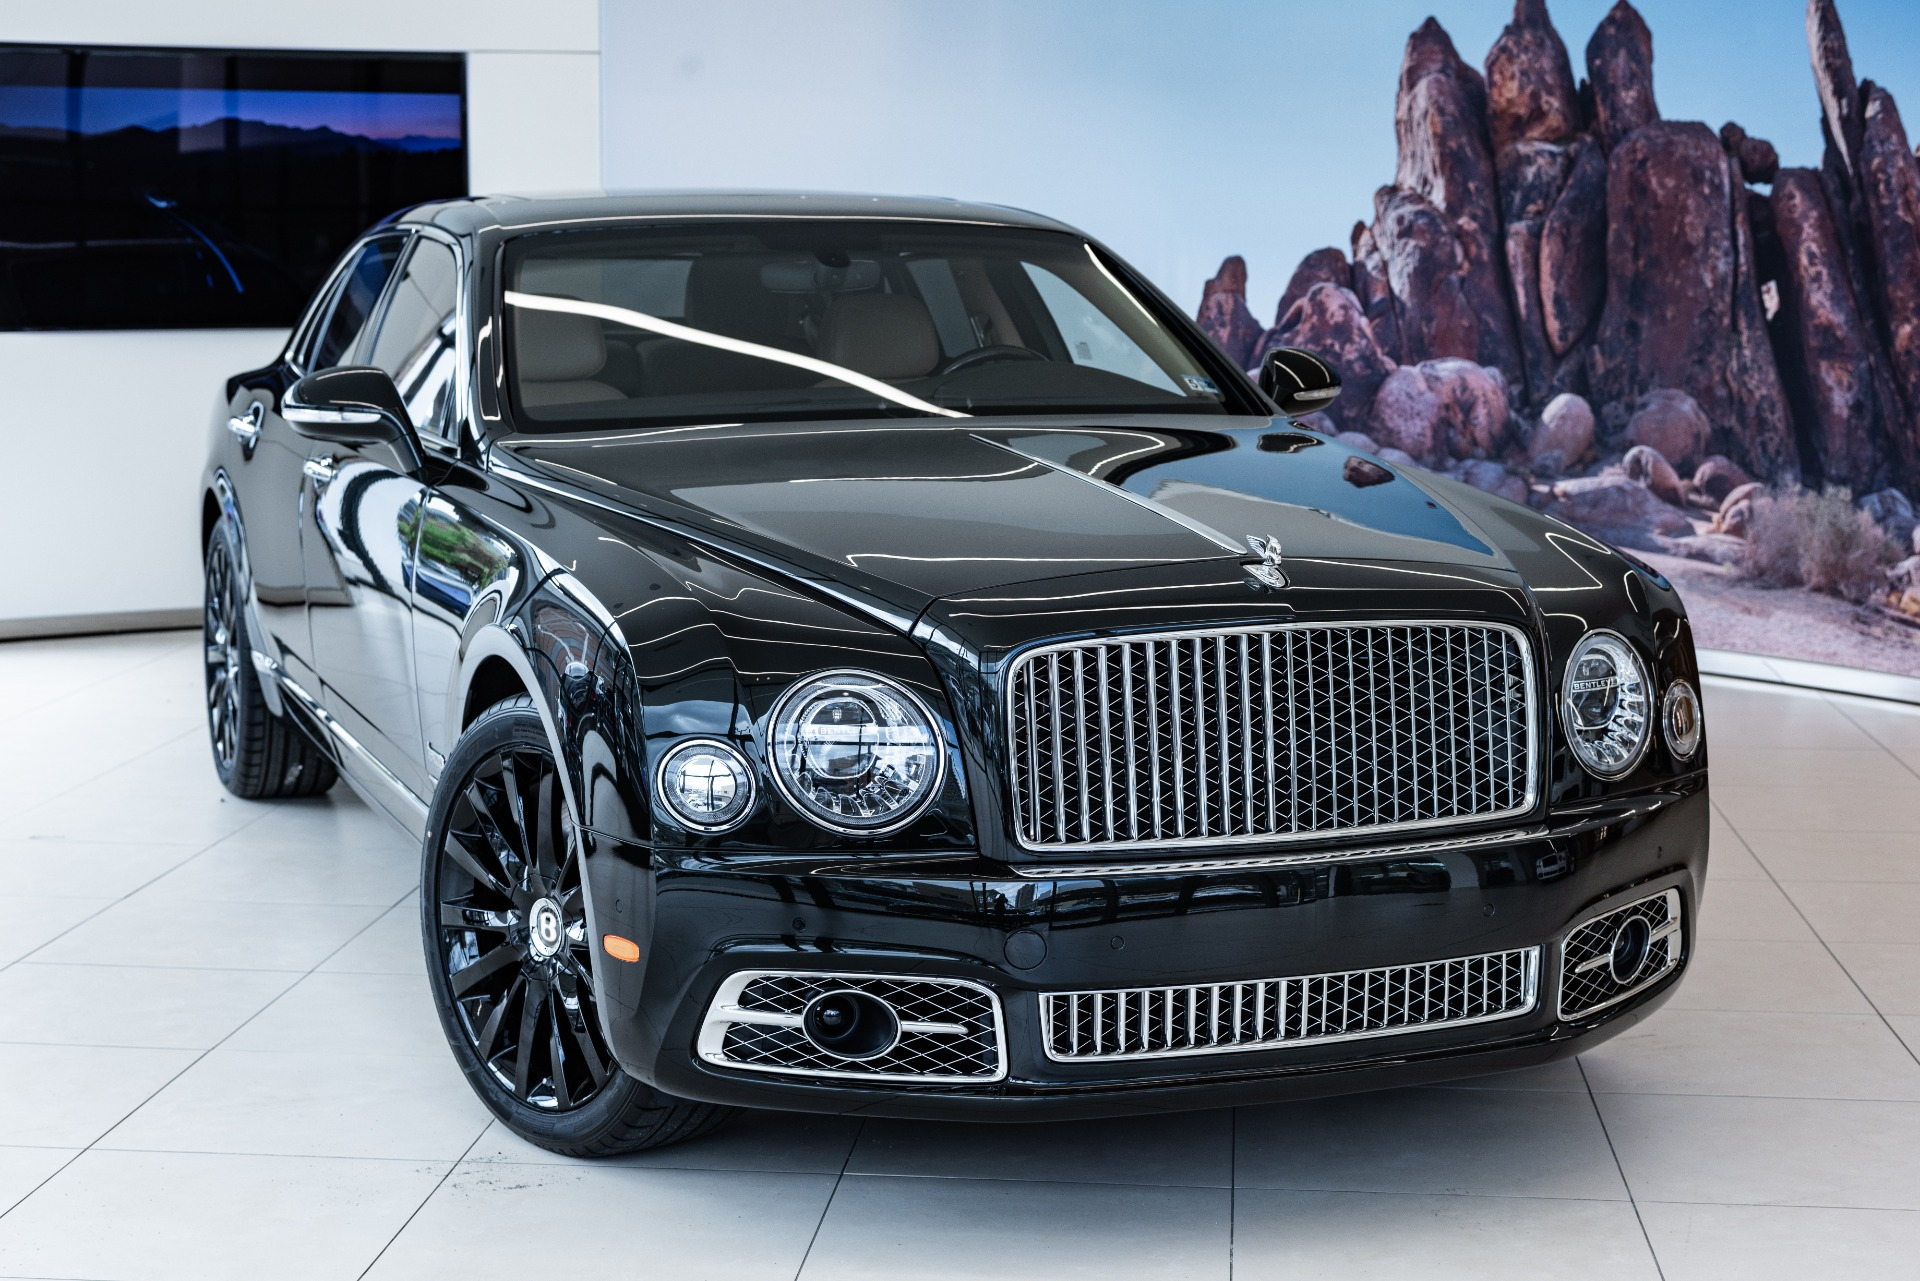 2019 Bentley Mulsanne Wo Bentley Edition Stock 9n004407 For Sale Near Vienna Va Va Bentley Dealer